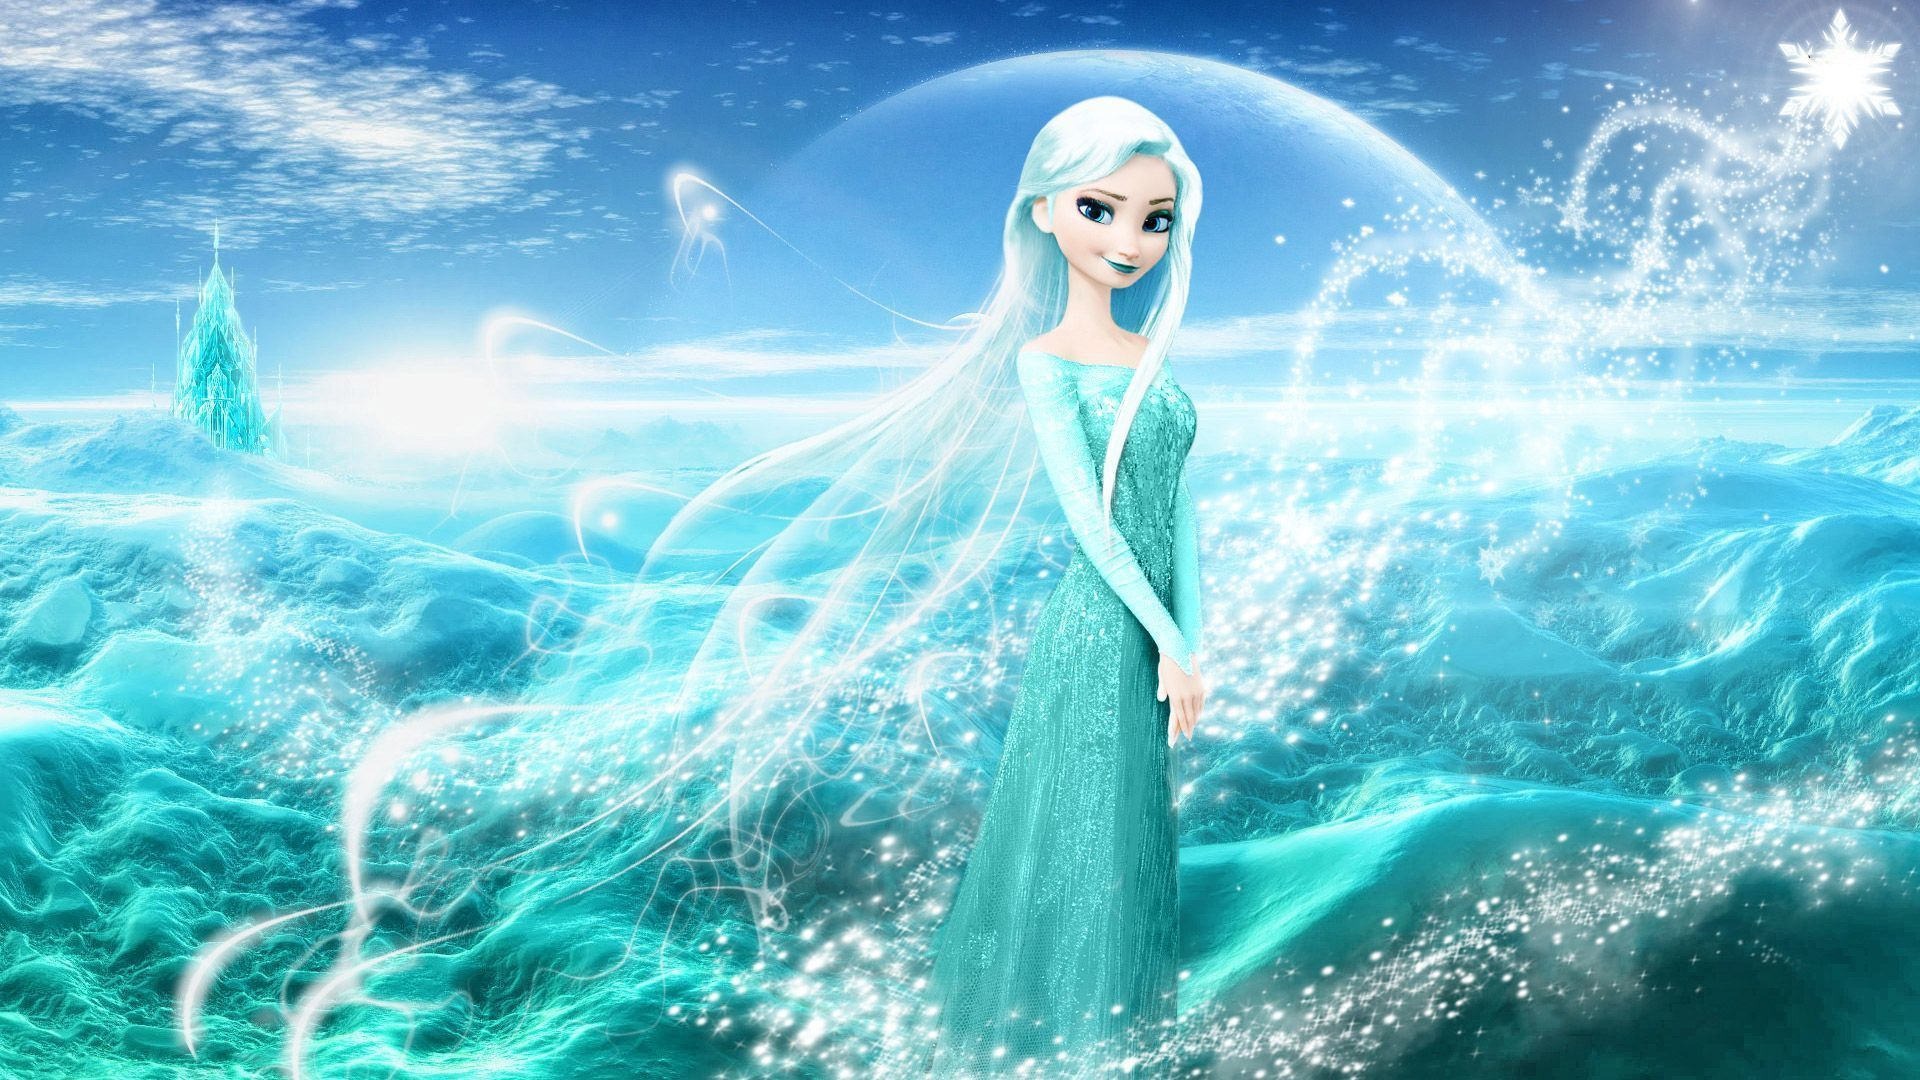 frozen hd wallpapers backgrounds wallpaper | hd wallpapers